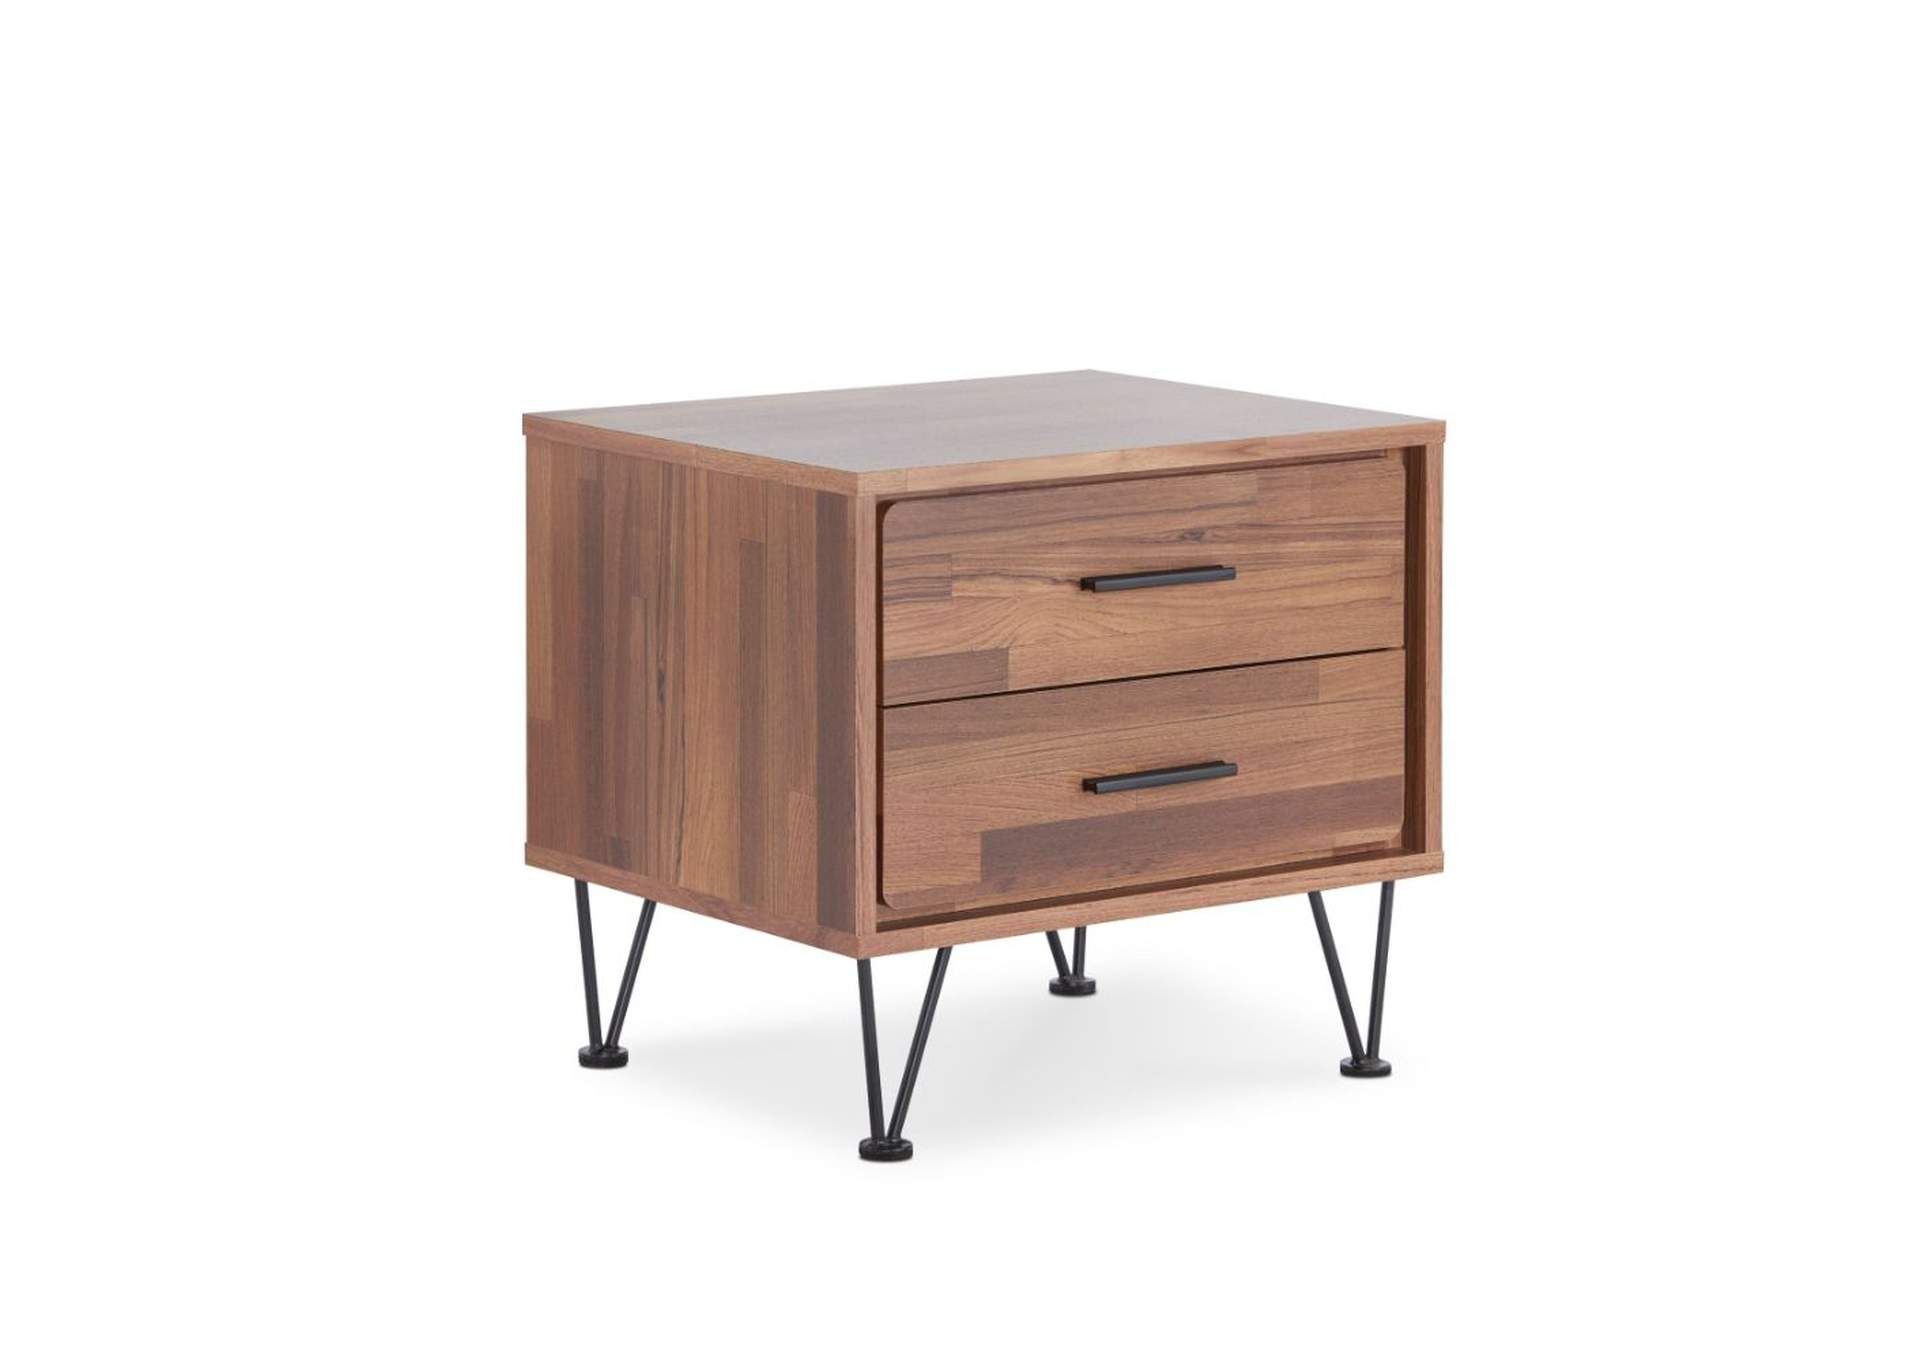 Deoss Walnut Accent Table,Acme